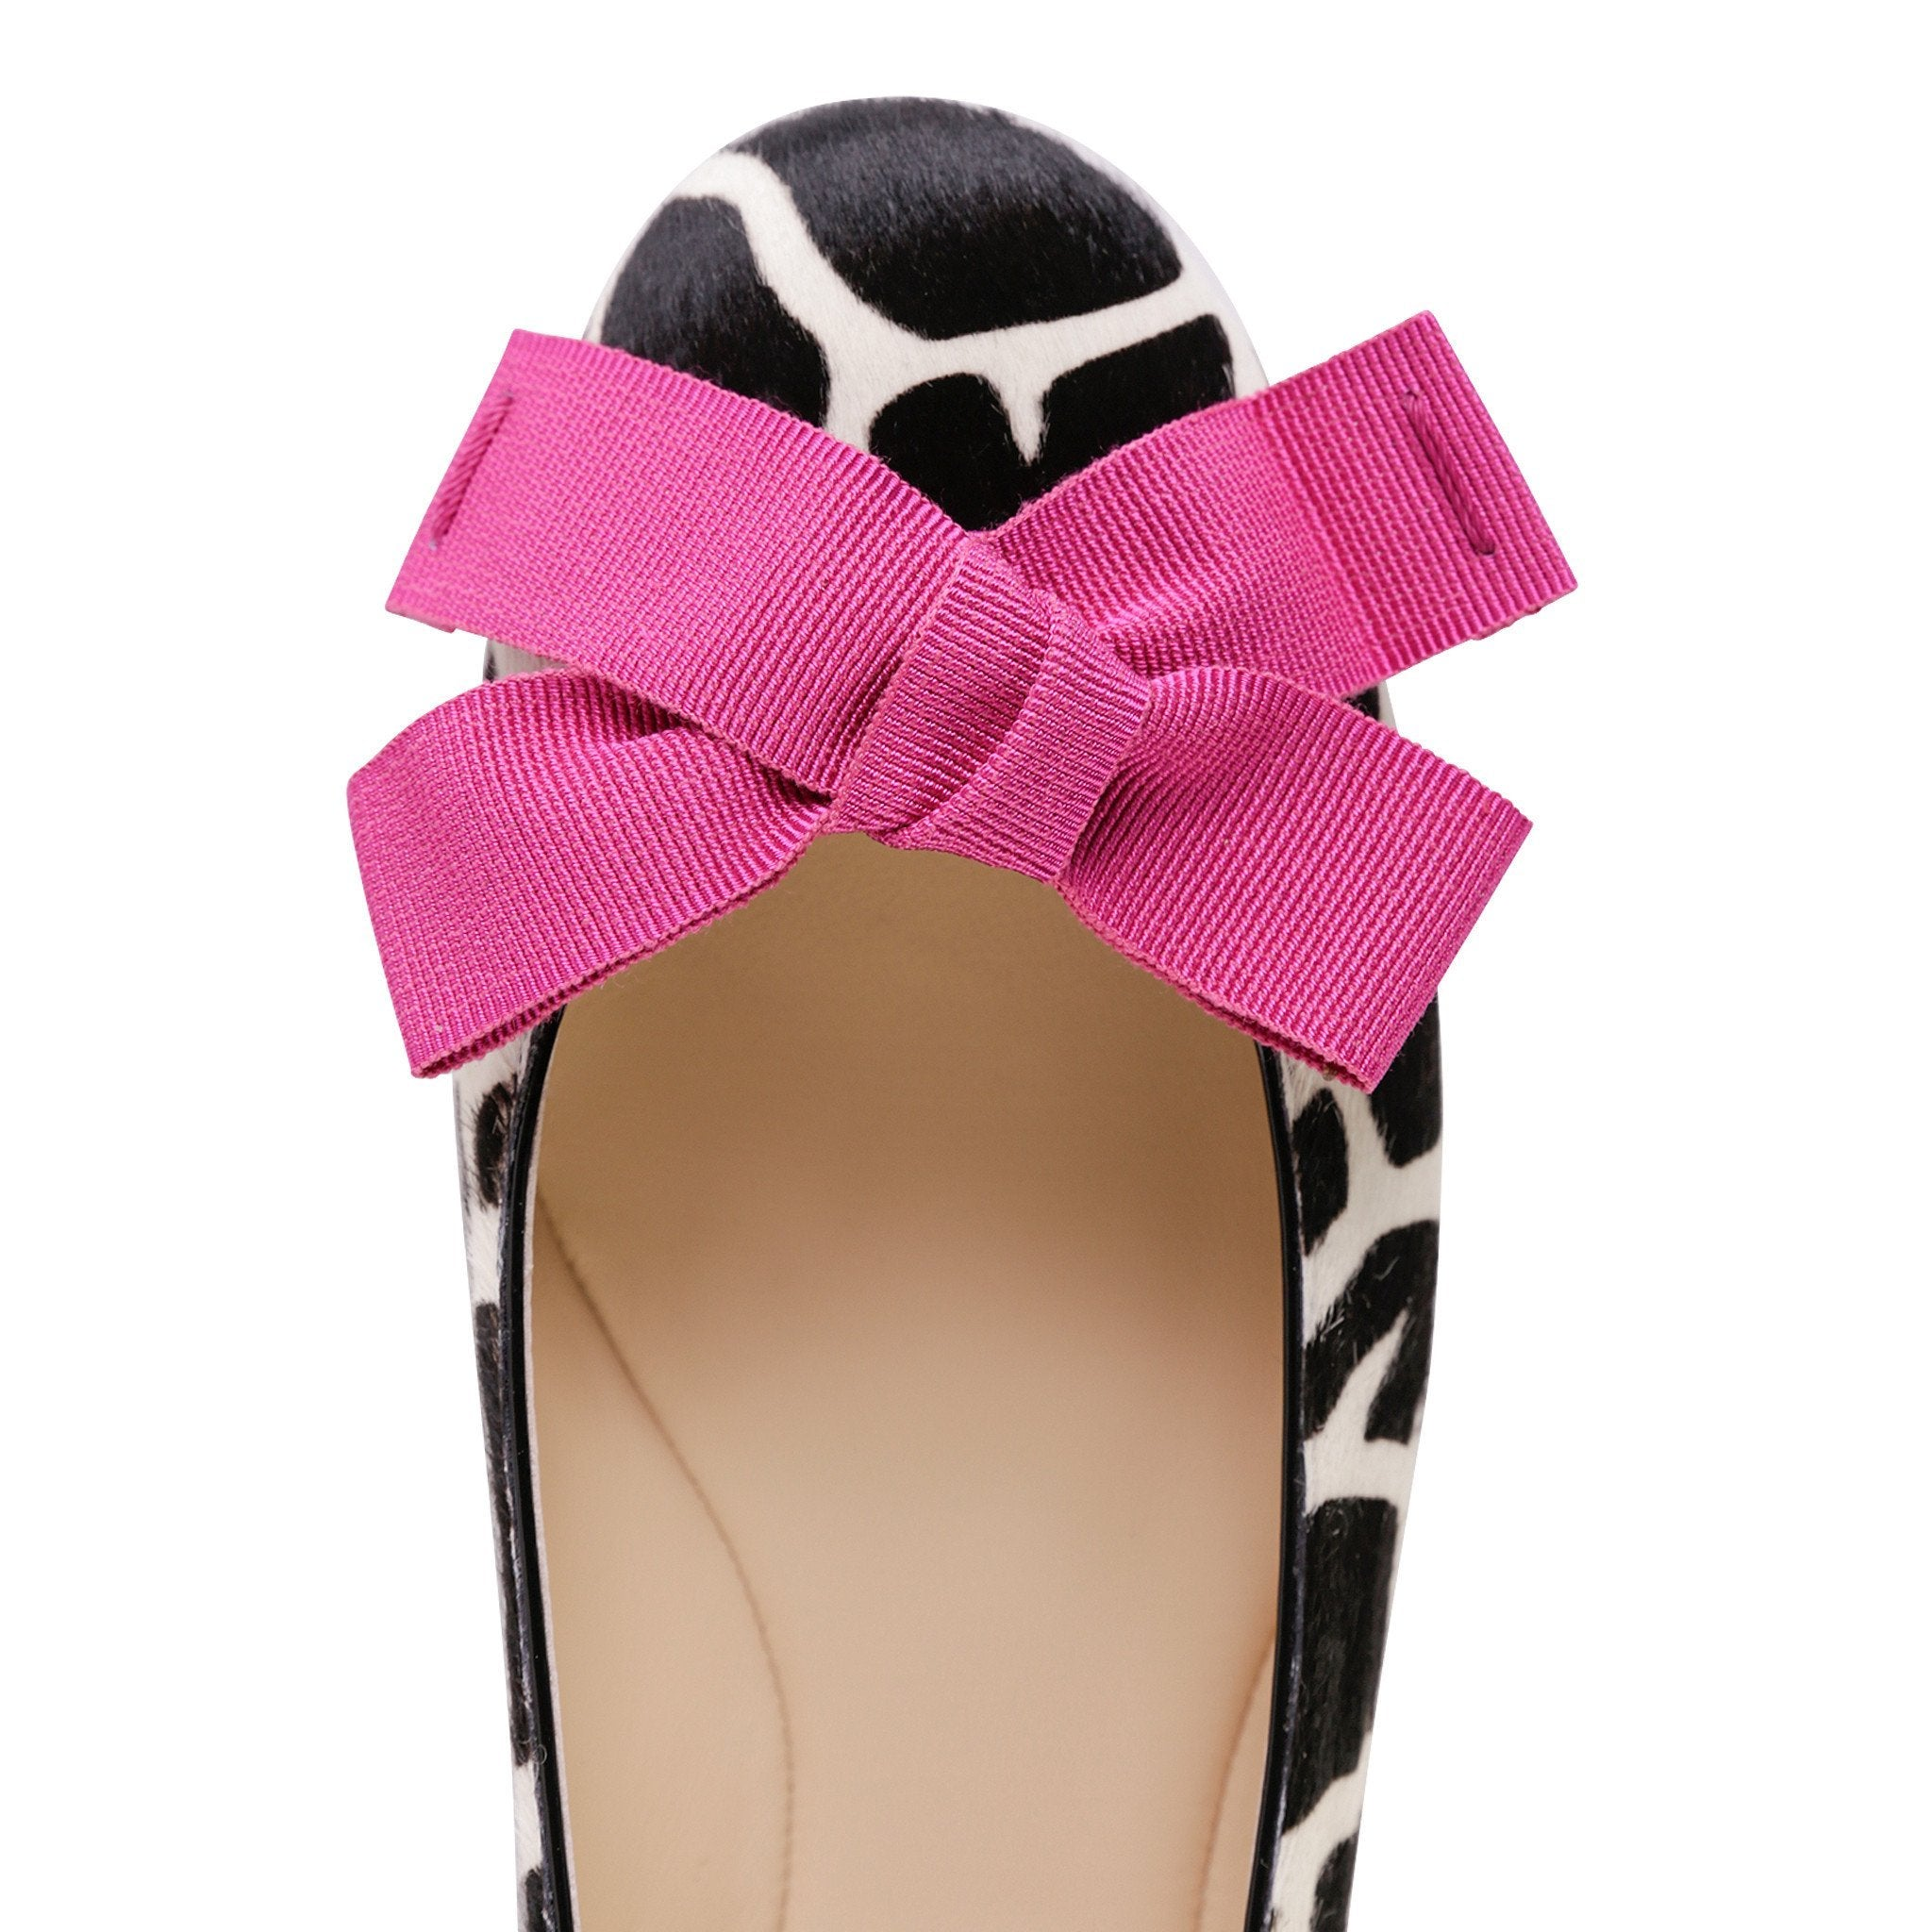 VENEZIA - Calf Hair Ruanda + Grosgrain Fuxia Bow, VIAJIYU - Women's Hand Made Sustainable Luxury Shoes. Made in Italy. Made to Order.